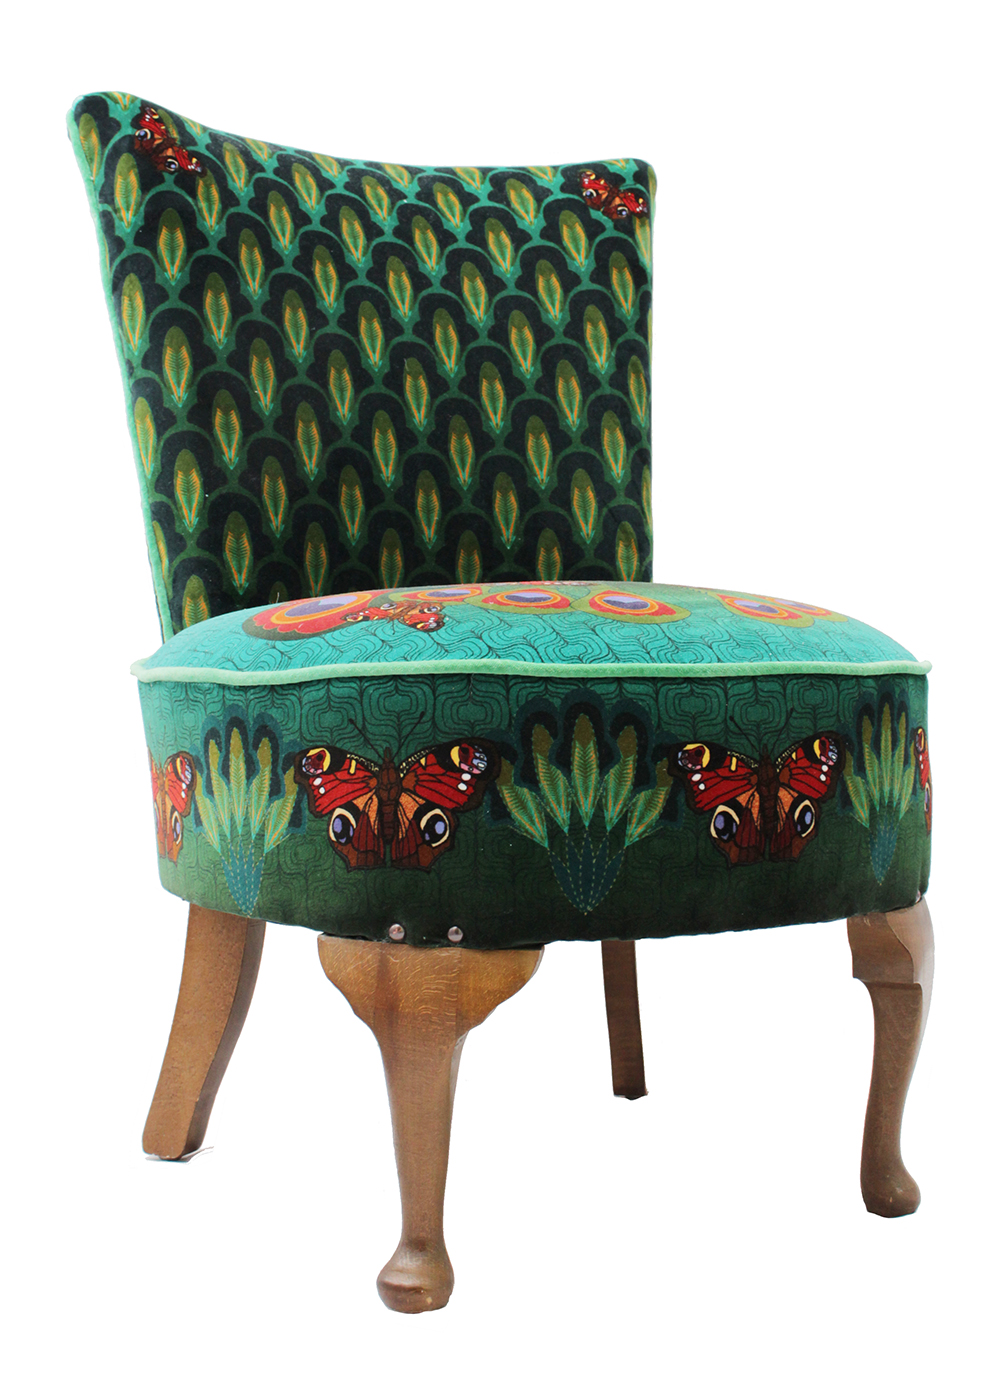 Peacock butterfly chair 78cm high x 56 cm wide